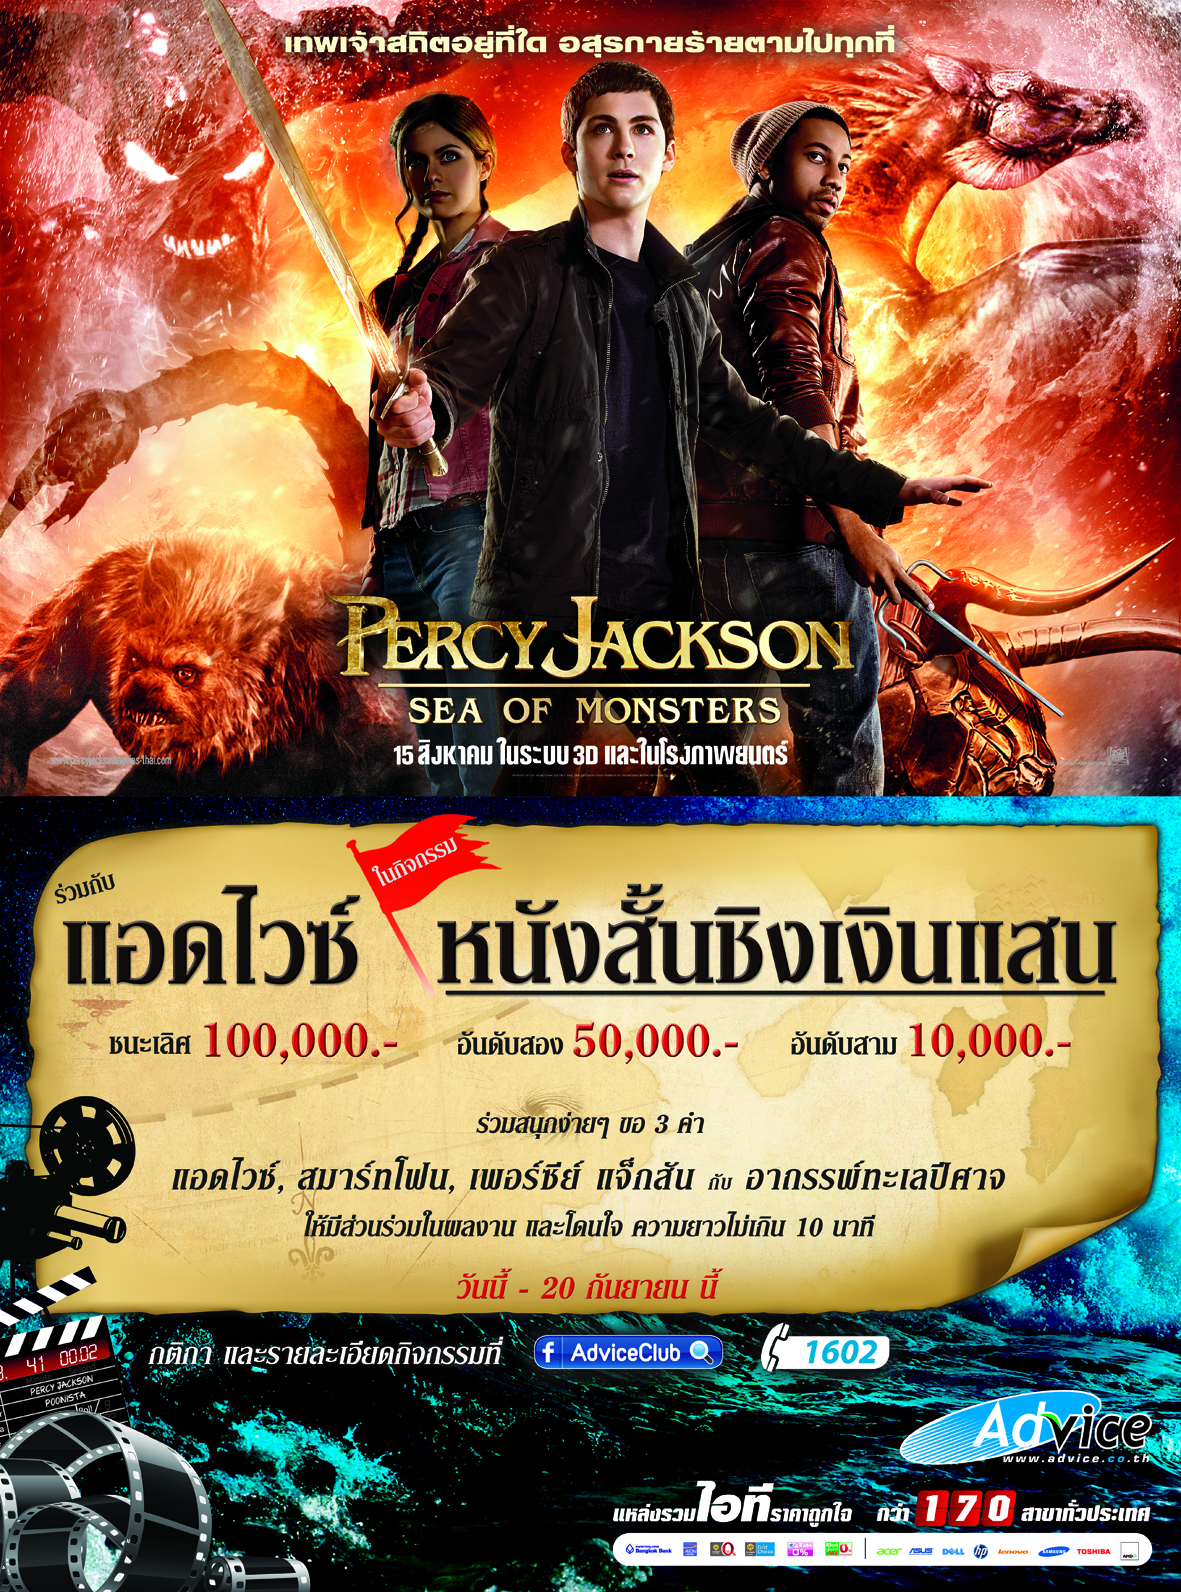 Percy Jackson Poster A2 WB S